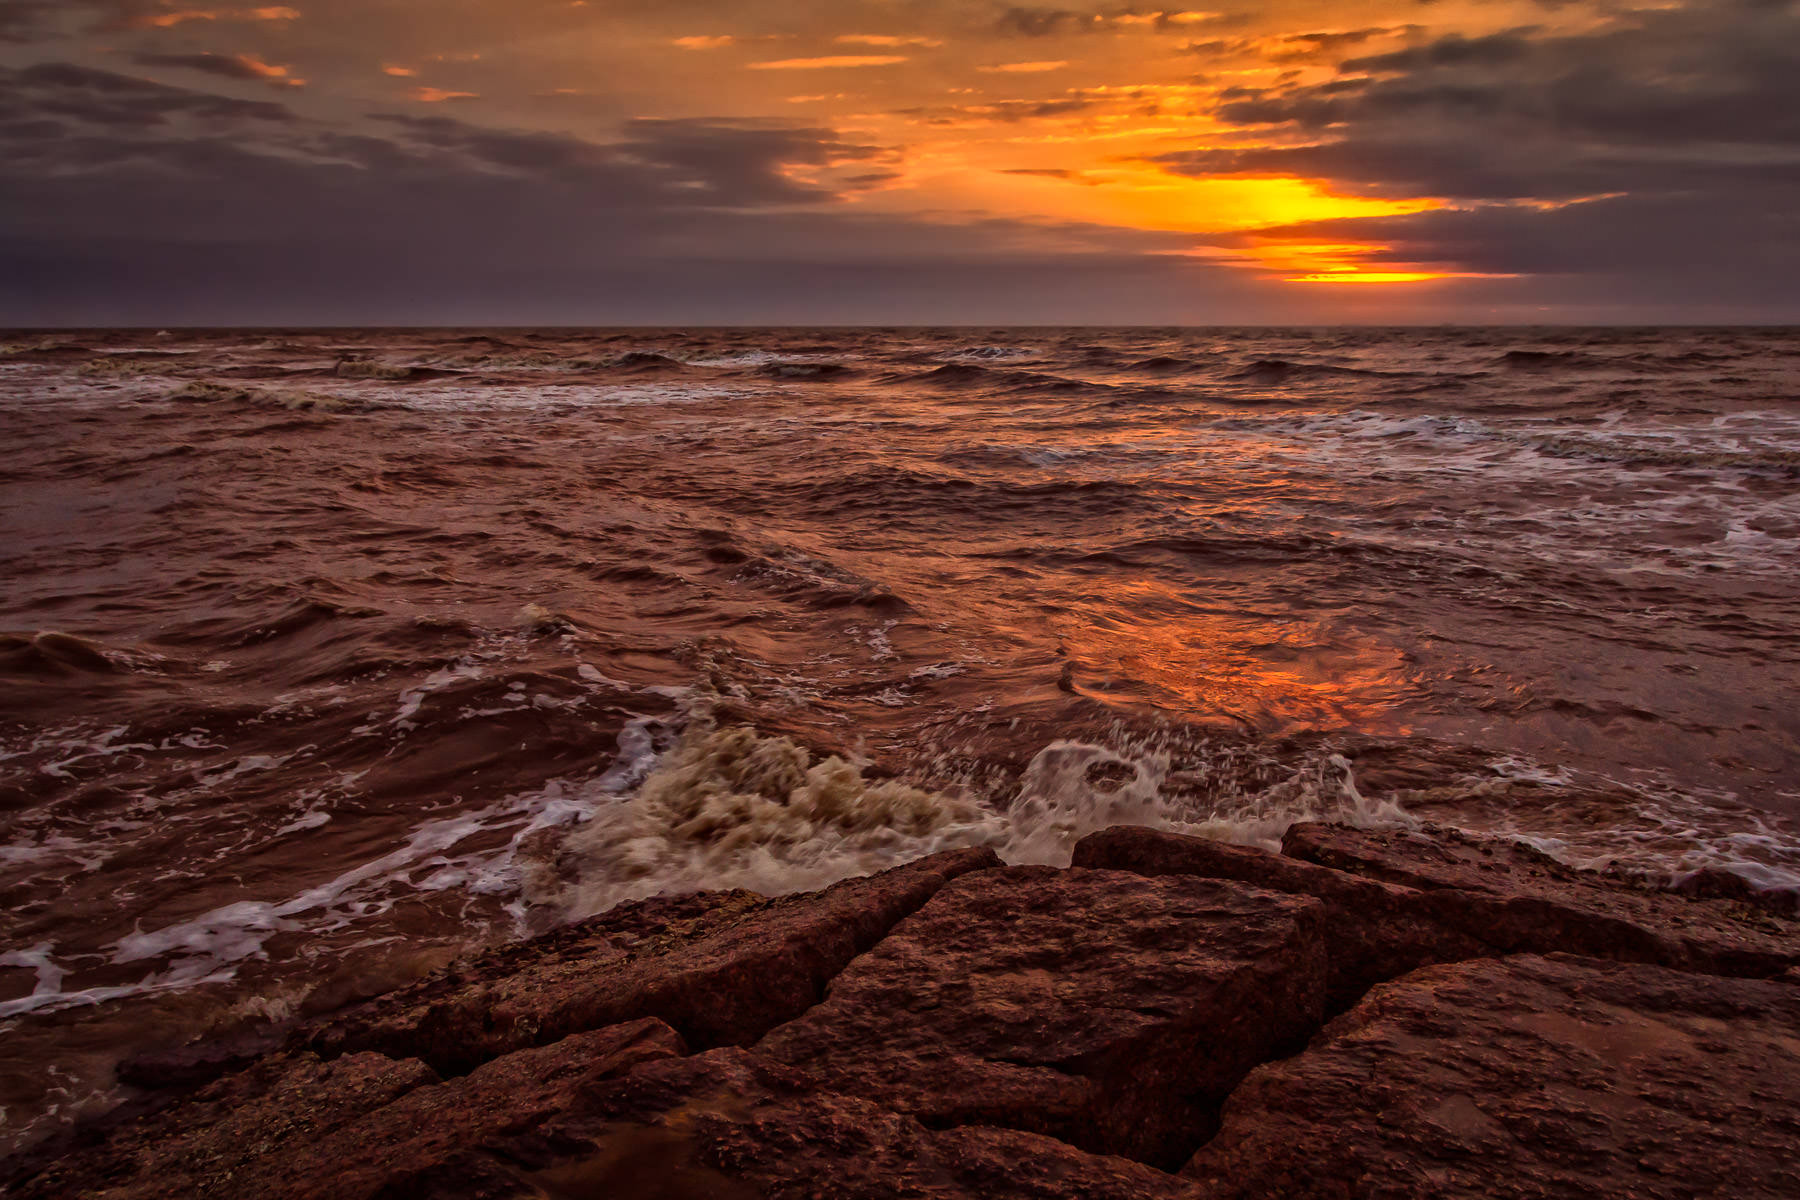 Waves crash into a granite jetty as the sun rises over the Gulf of Mexico just off the coast of Galveston, Texas.